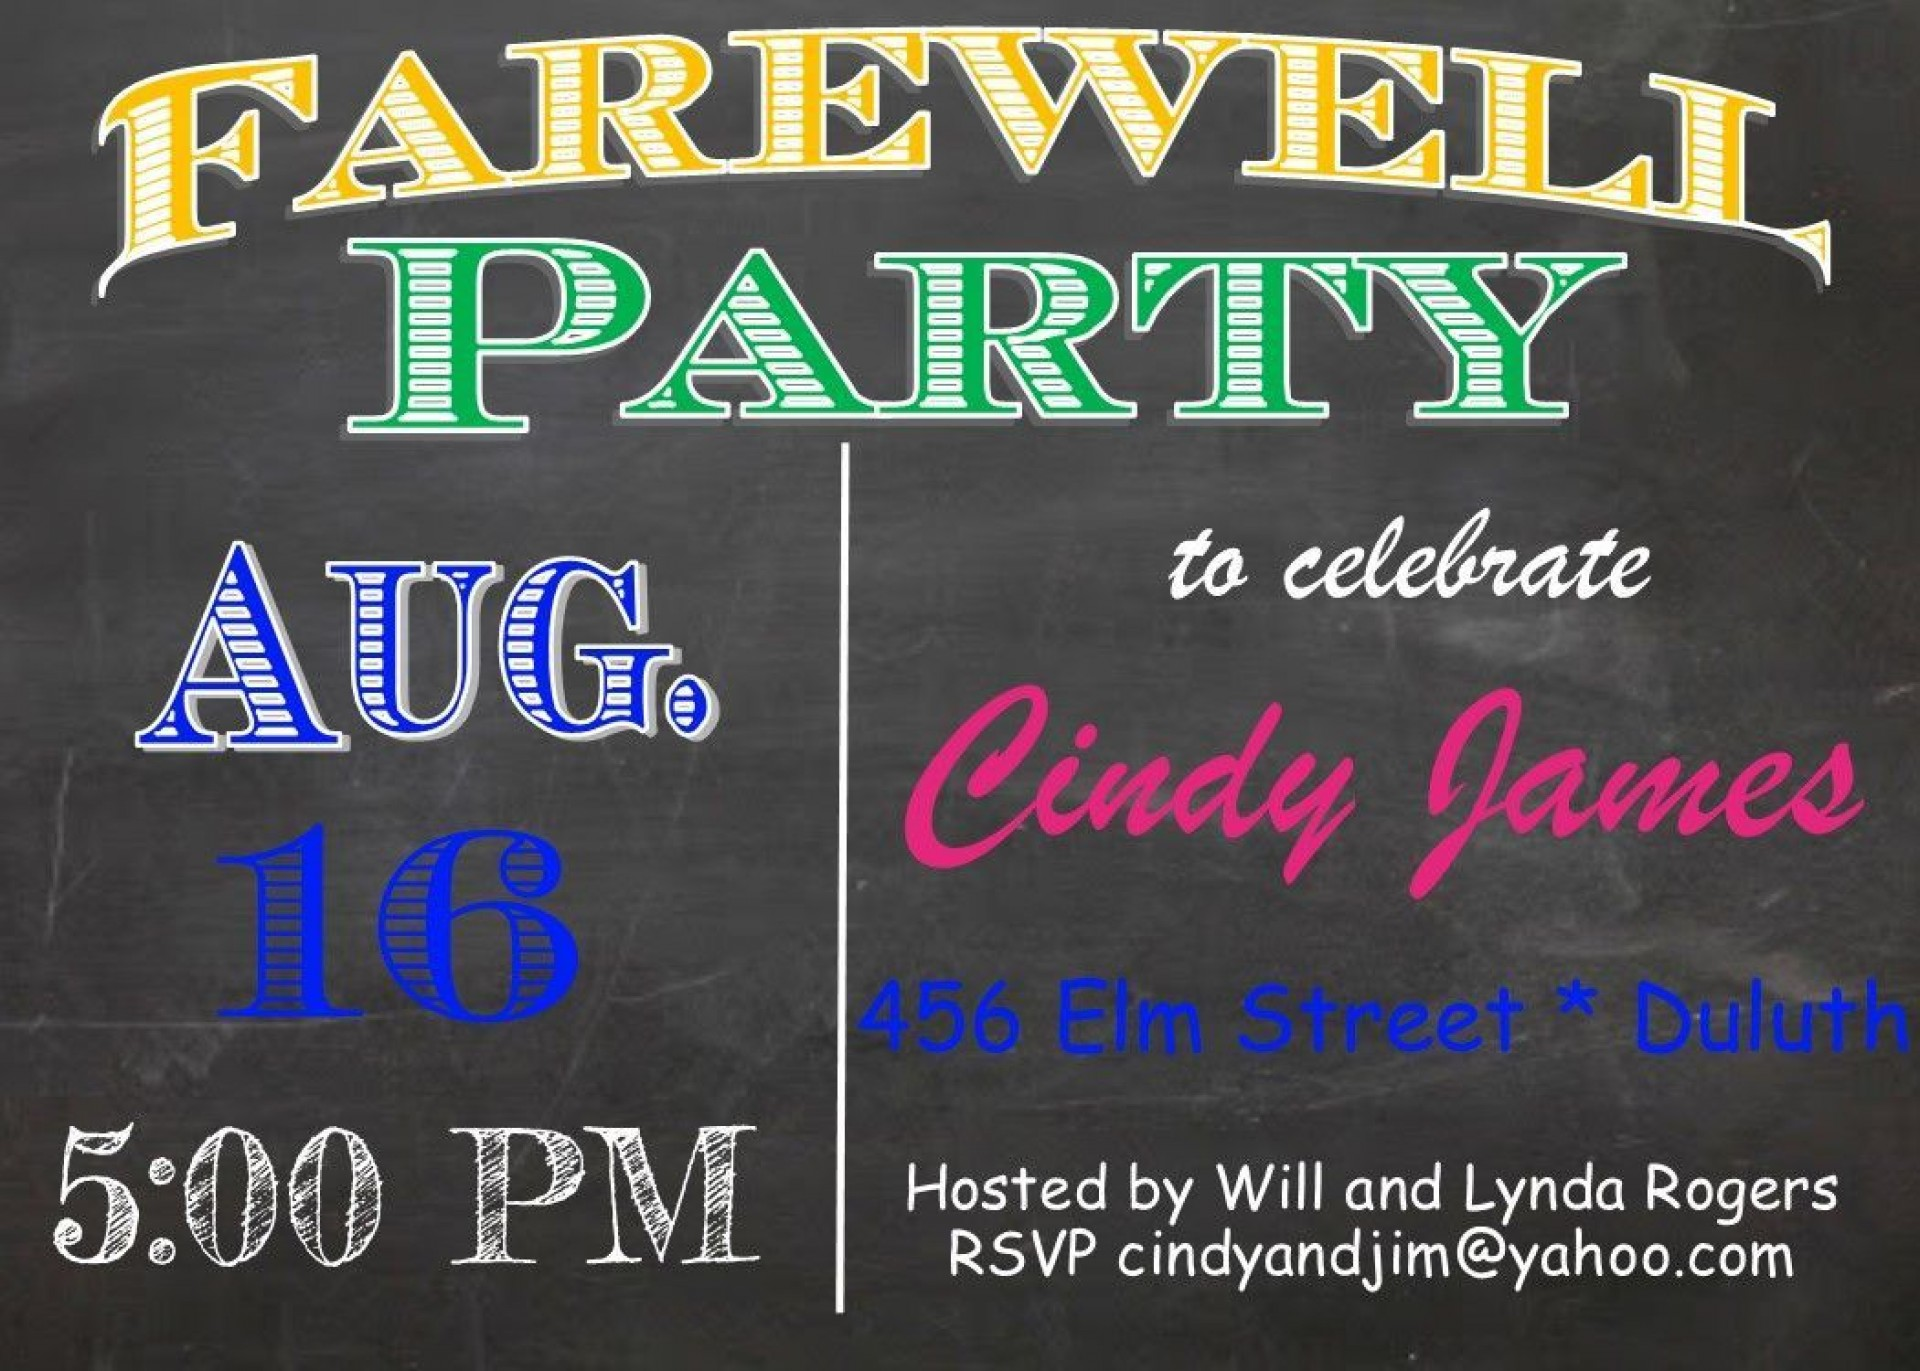 005 Simple Going Away Party Invitation Template Highest Clarity  Free Printable1920